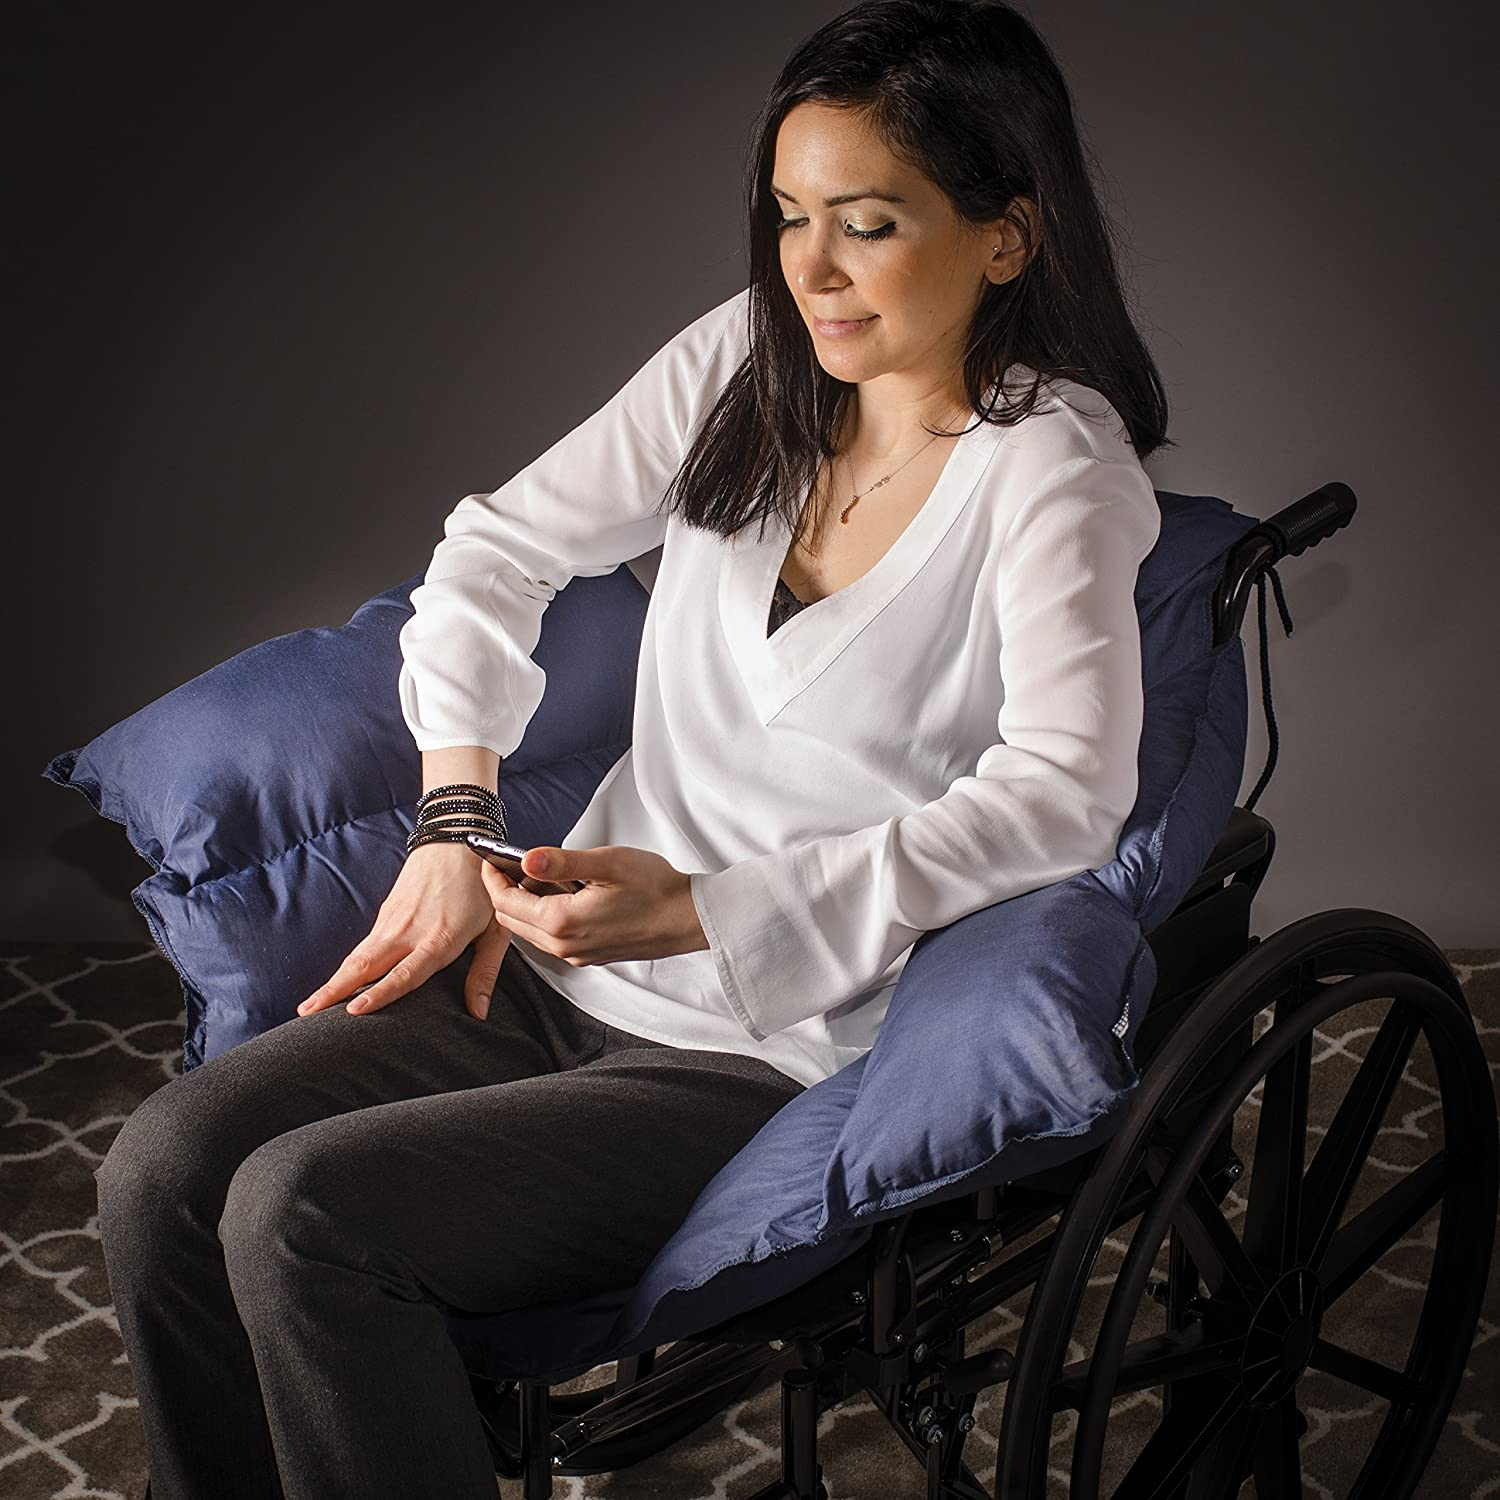 DMI Comfort Wheelchair Cushion